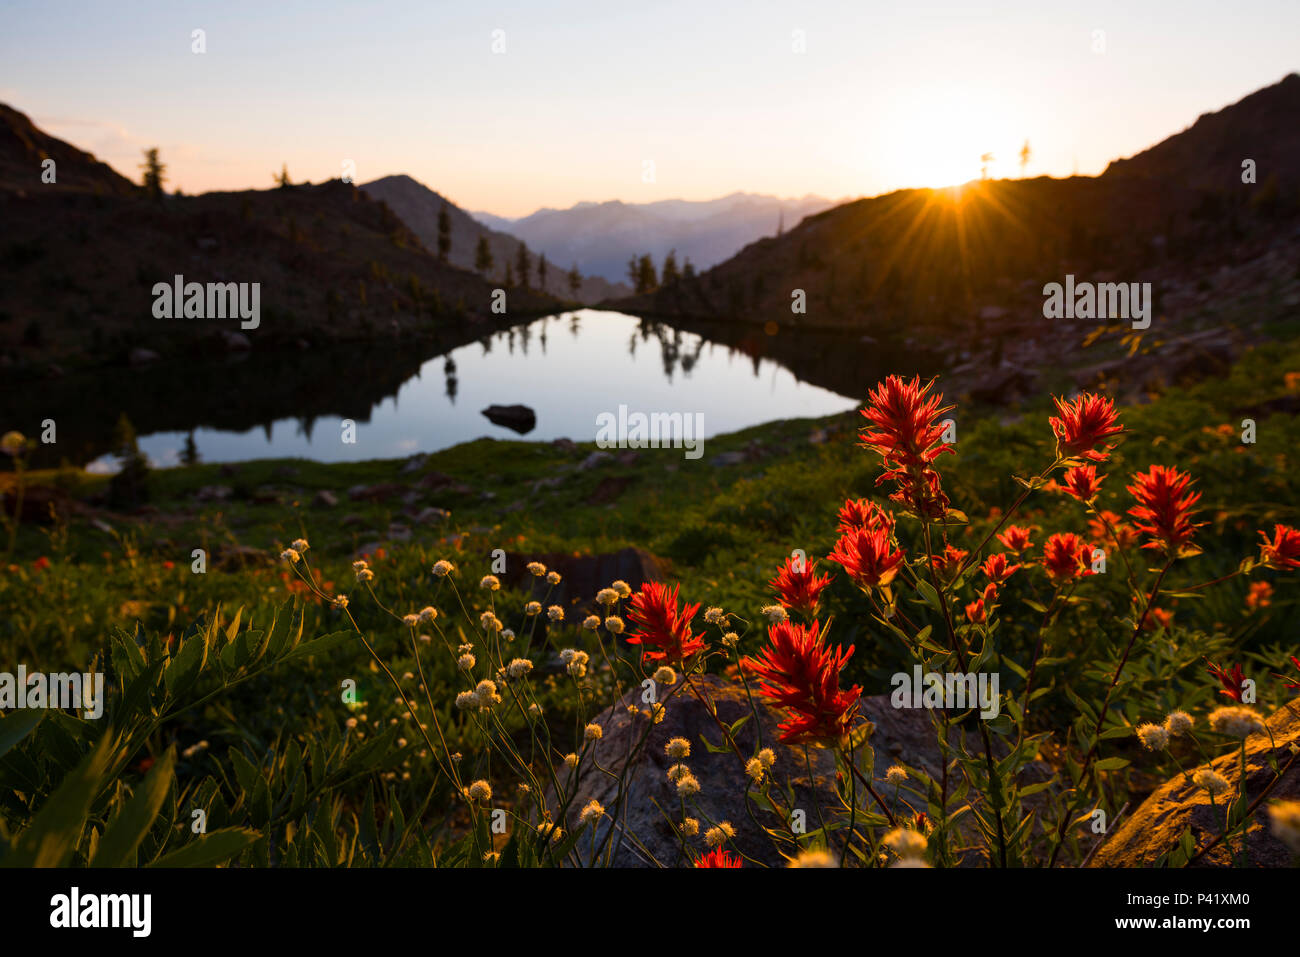 Sunset and wildflowers at Echo Lake in the Trinity Alps wilderness Four Lakes loop backpacking trail in California. - Stock Image